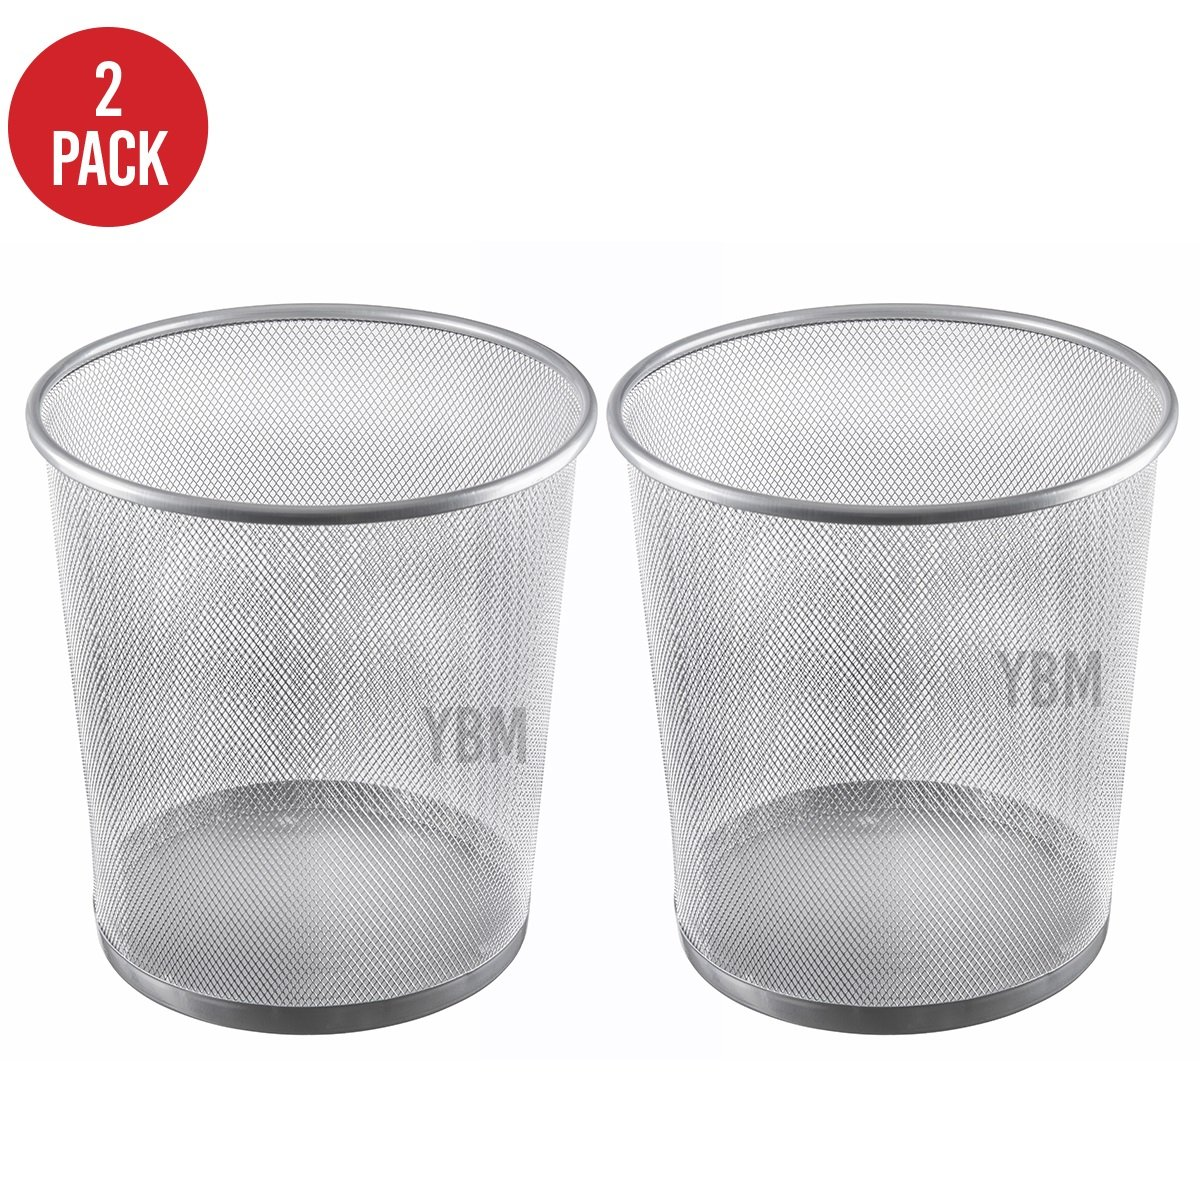 Ybmhome Steel Mesh Round Open Top Waste Basket Bin Trash Can for Office Home 2486-2 (2)